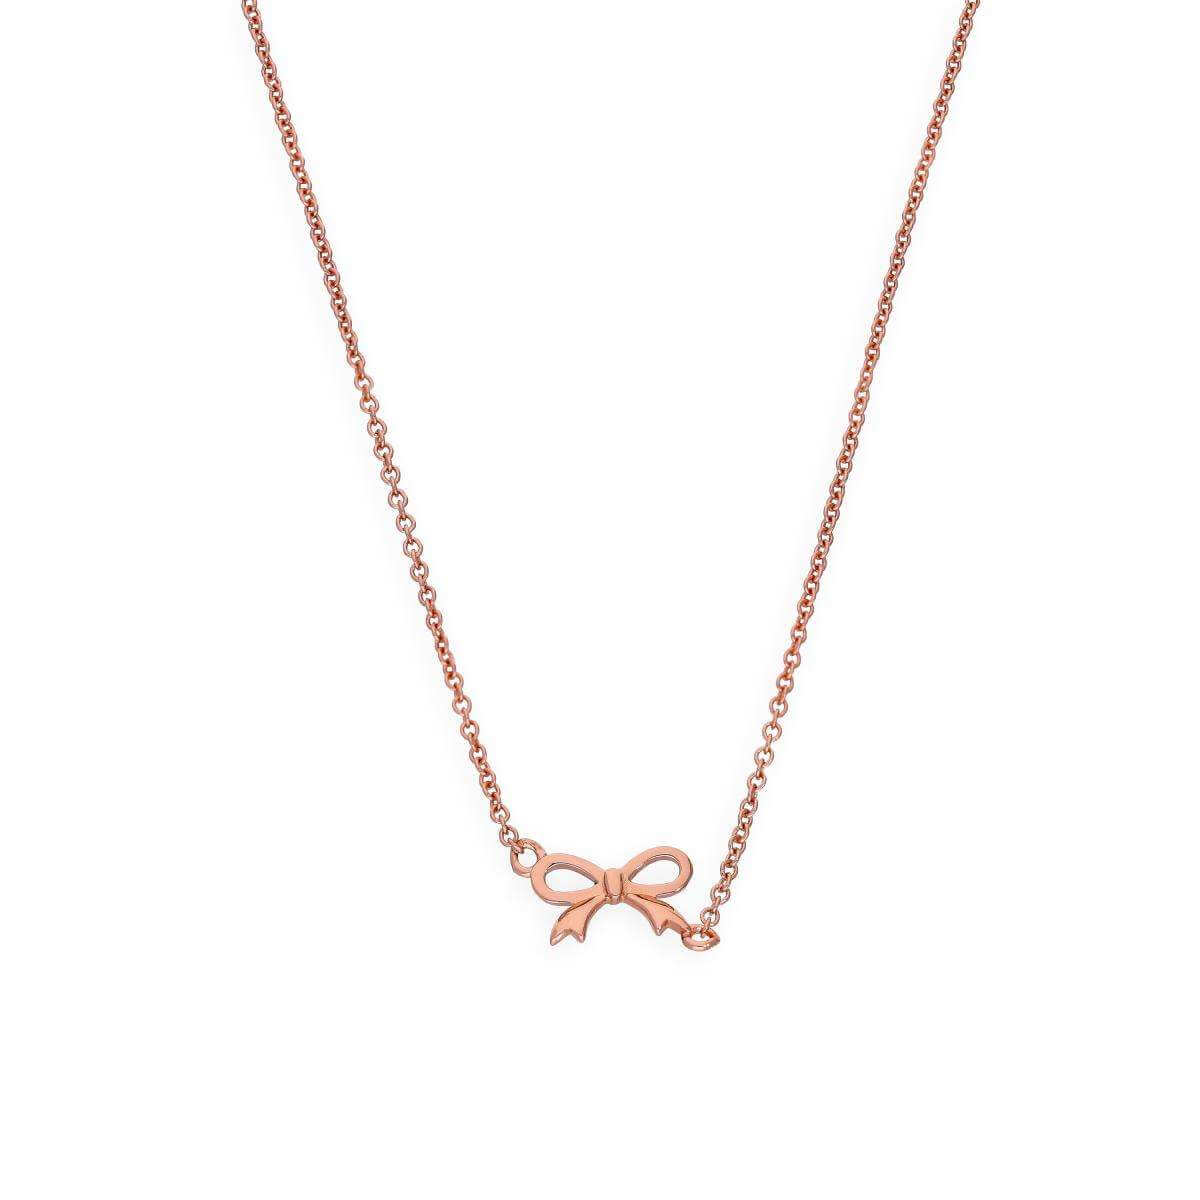 Rose Gold Plated Sterling Silver Ribbon Bow Necklace w 18 Inch Chain